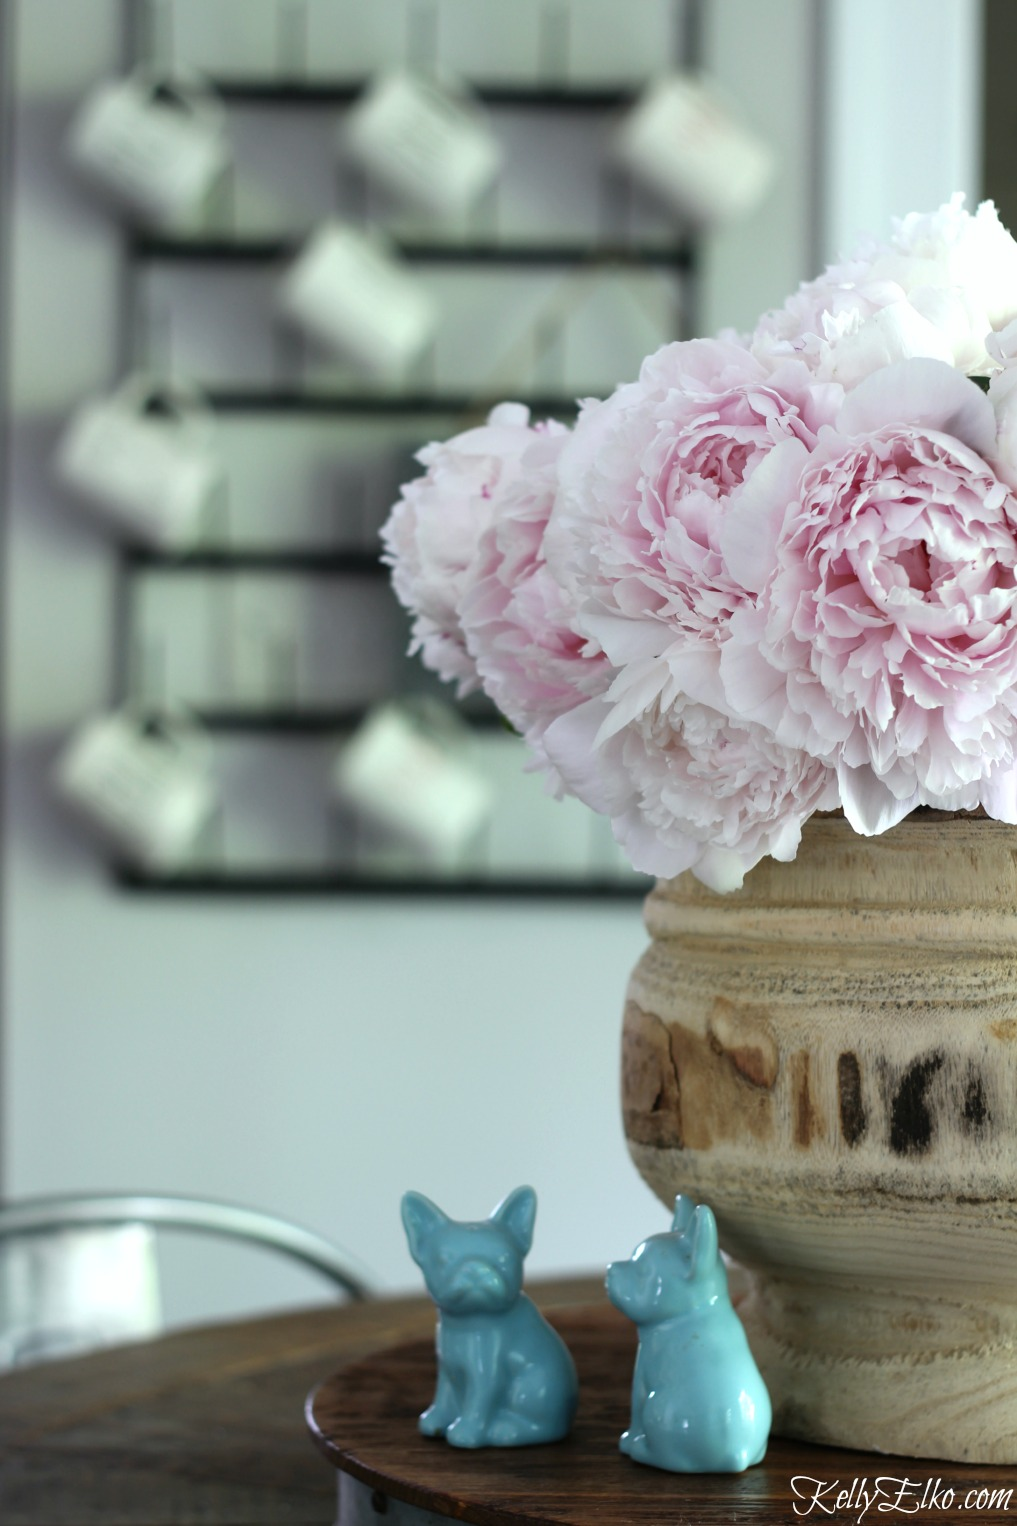 How to Make Peonies Last Longer - love these great tips for making sure your peonies always look in prime condition kellyelko.com #peonies #gardeningtips #gardens #gardening #perennials